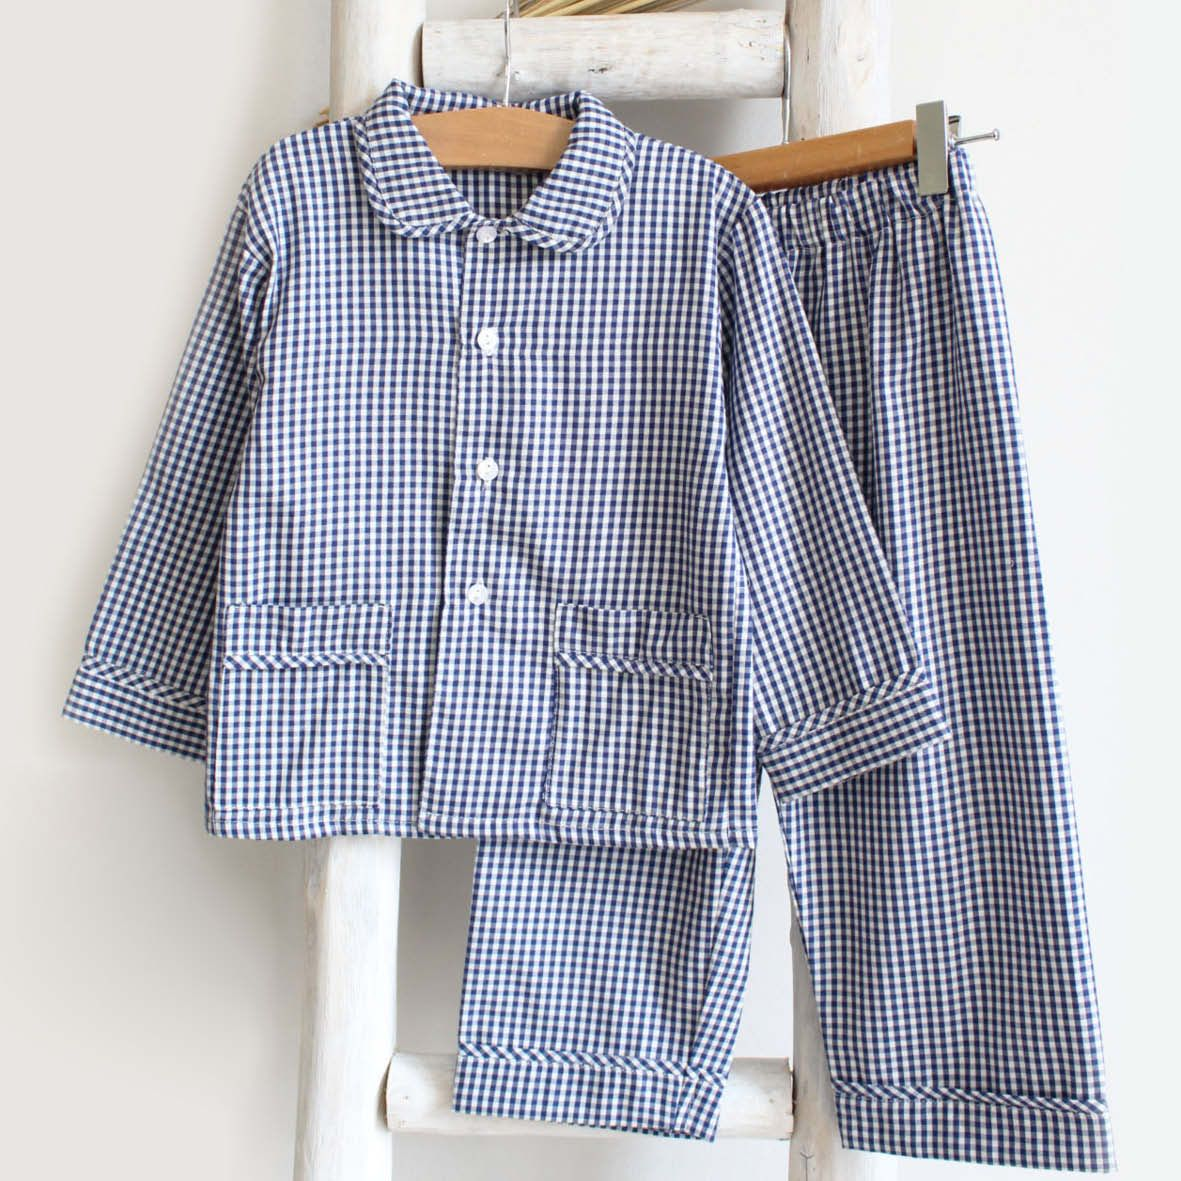 Pukatuka Navy Gingham Boys Pajamas